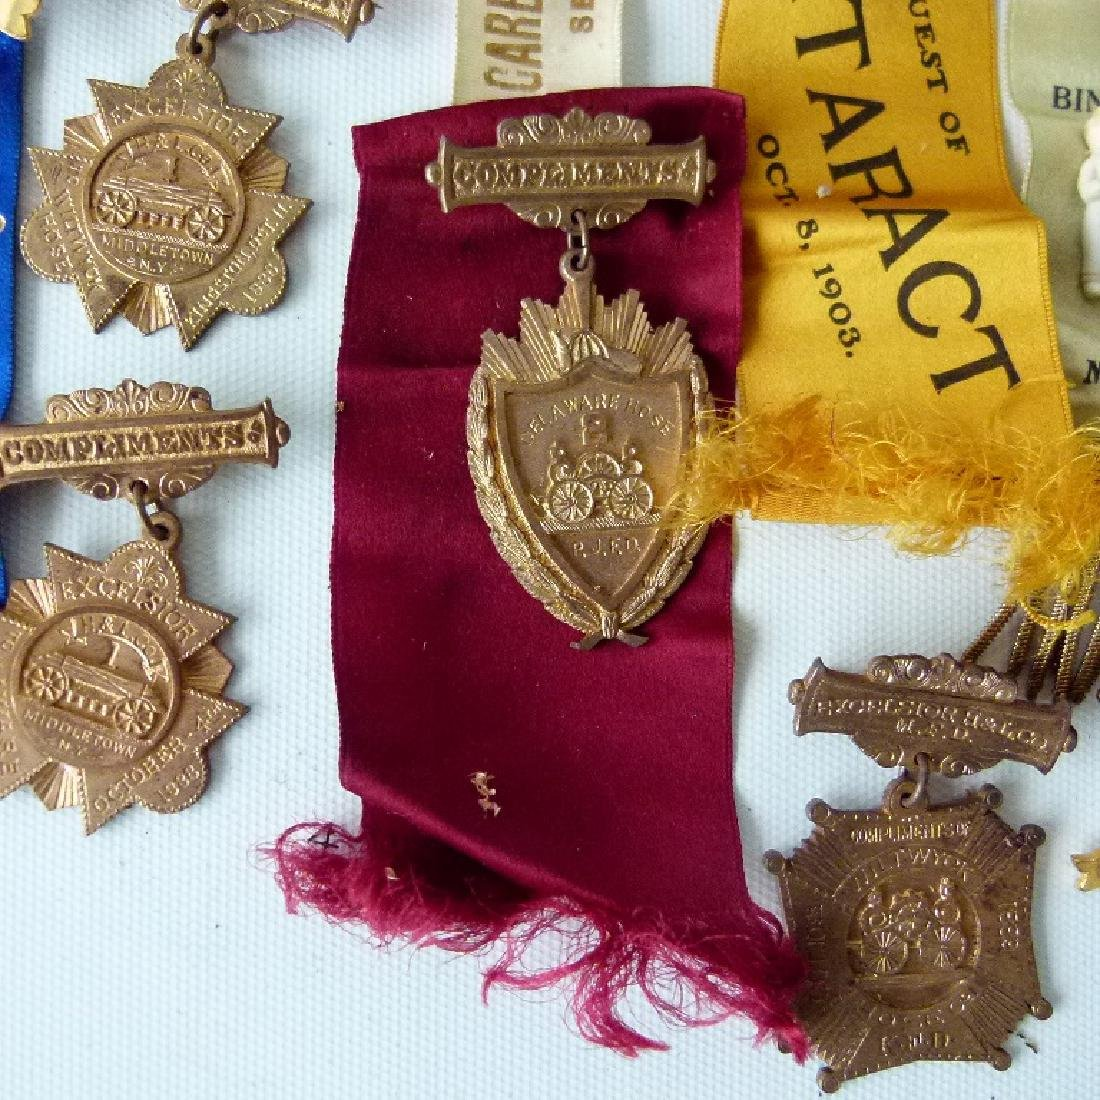 LOT ASSORTED INCL. EXCELSIOR FIRE DEPARTMENT EXHIBITION - 9